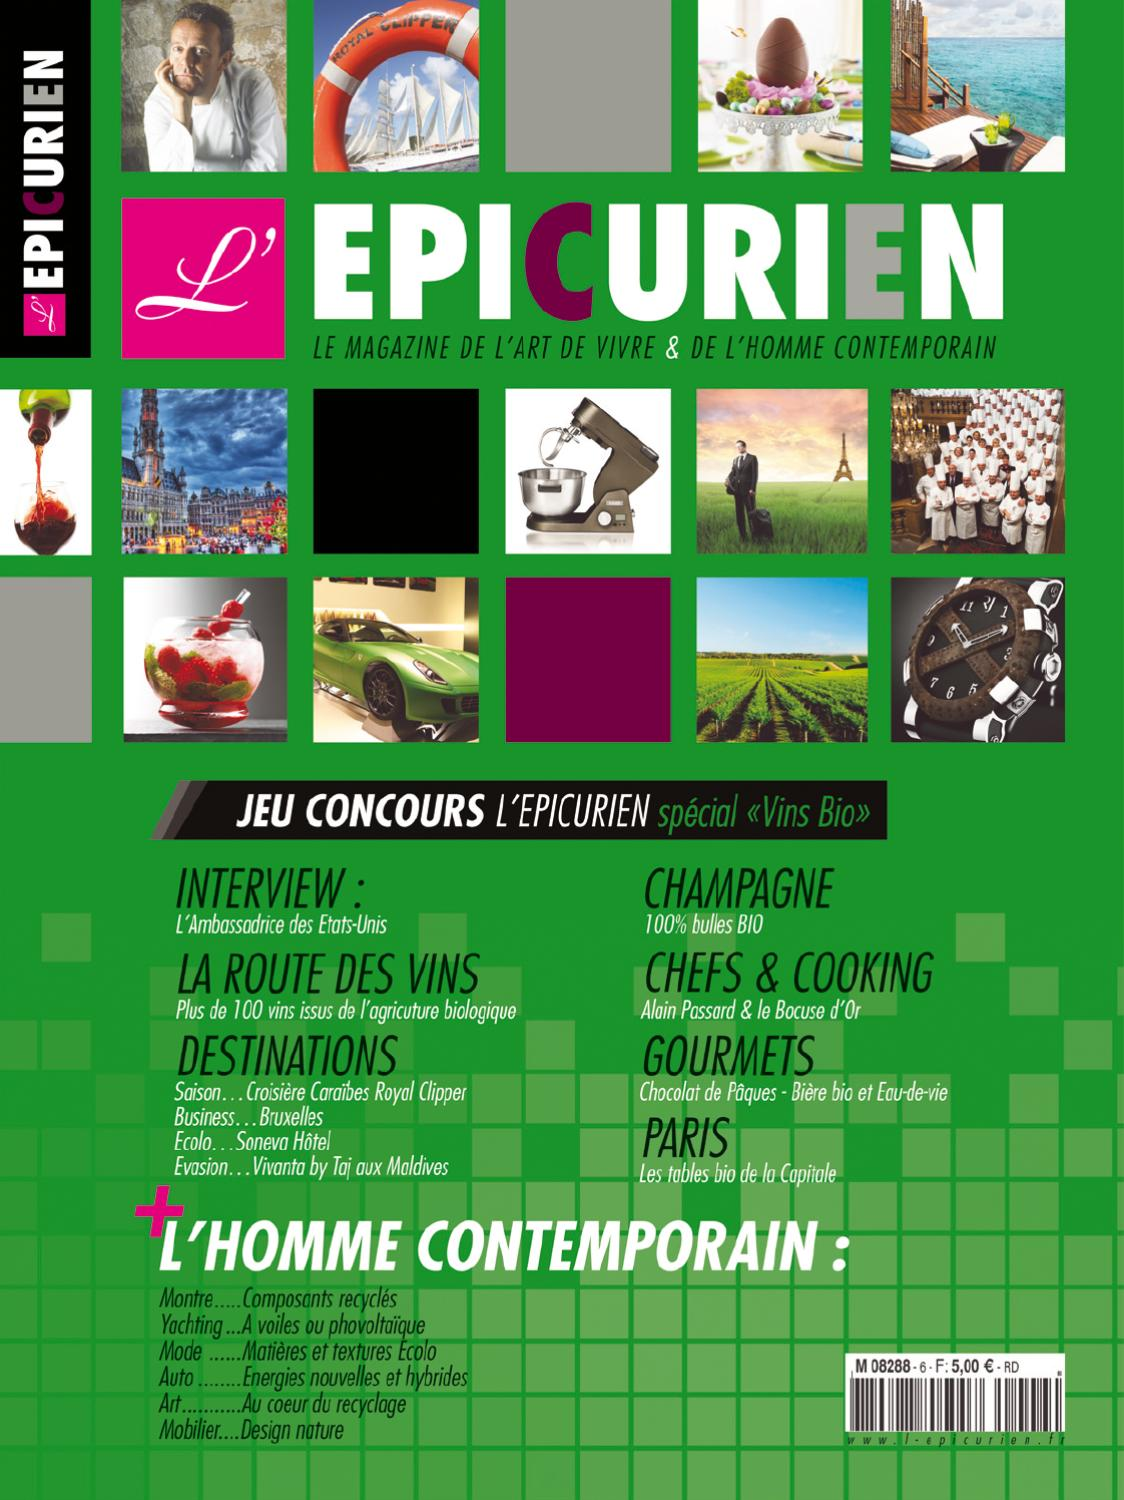 L EPICURIEN magazine 106 by Tony Barusta - Issuu 3dc427e19d7c